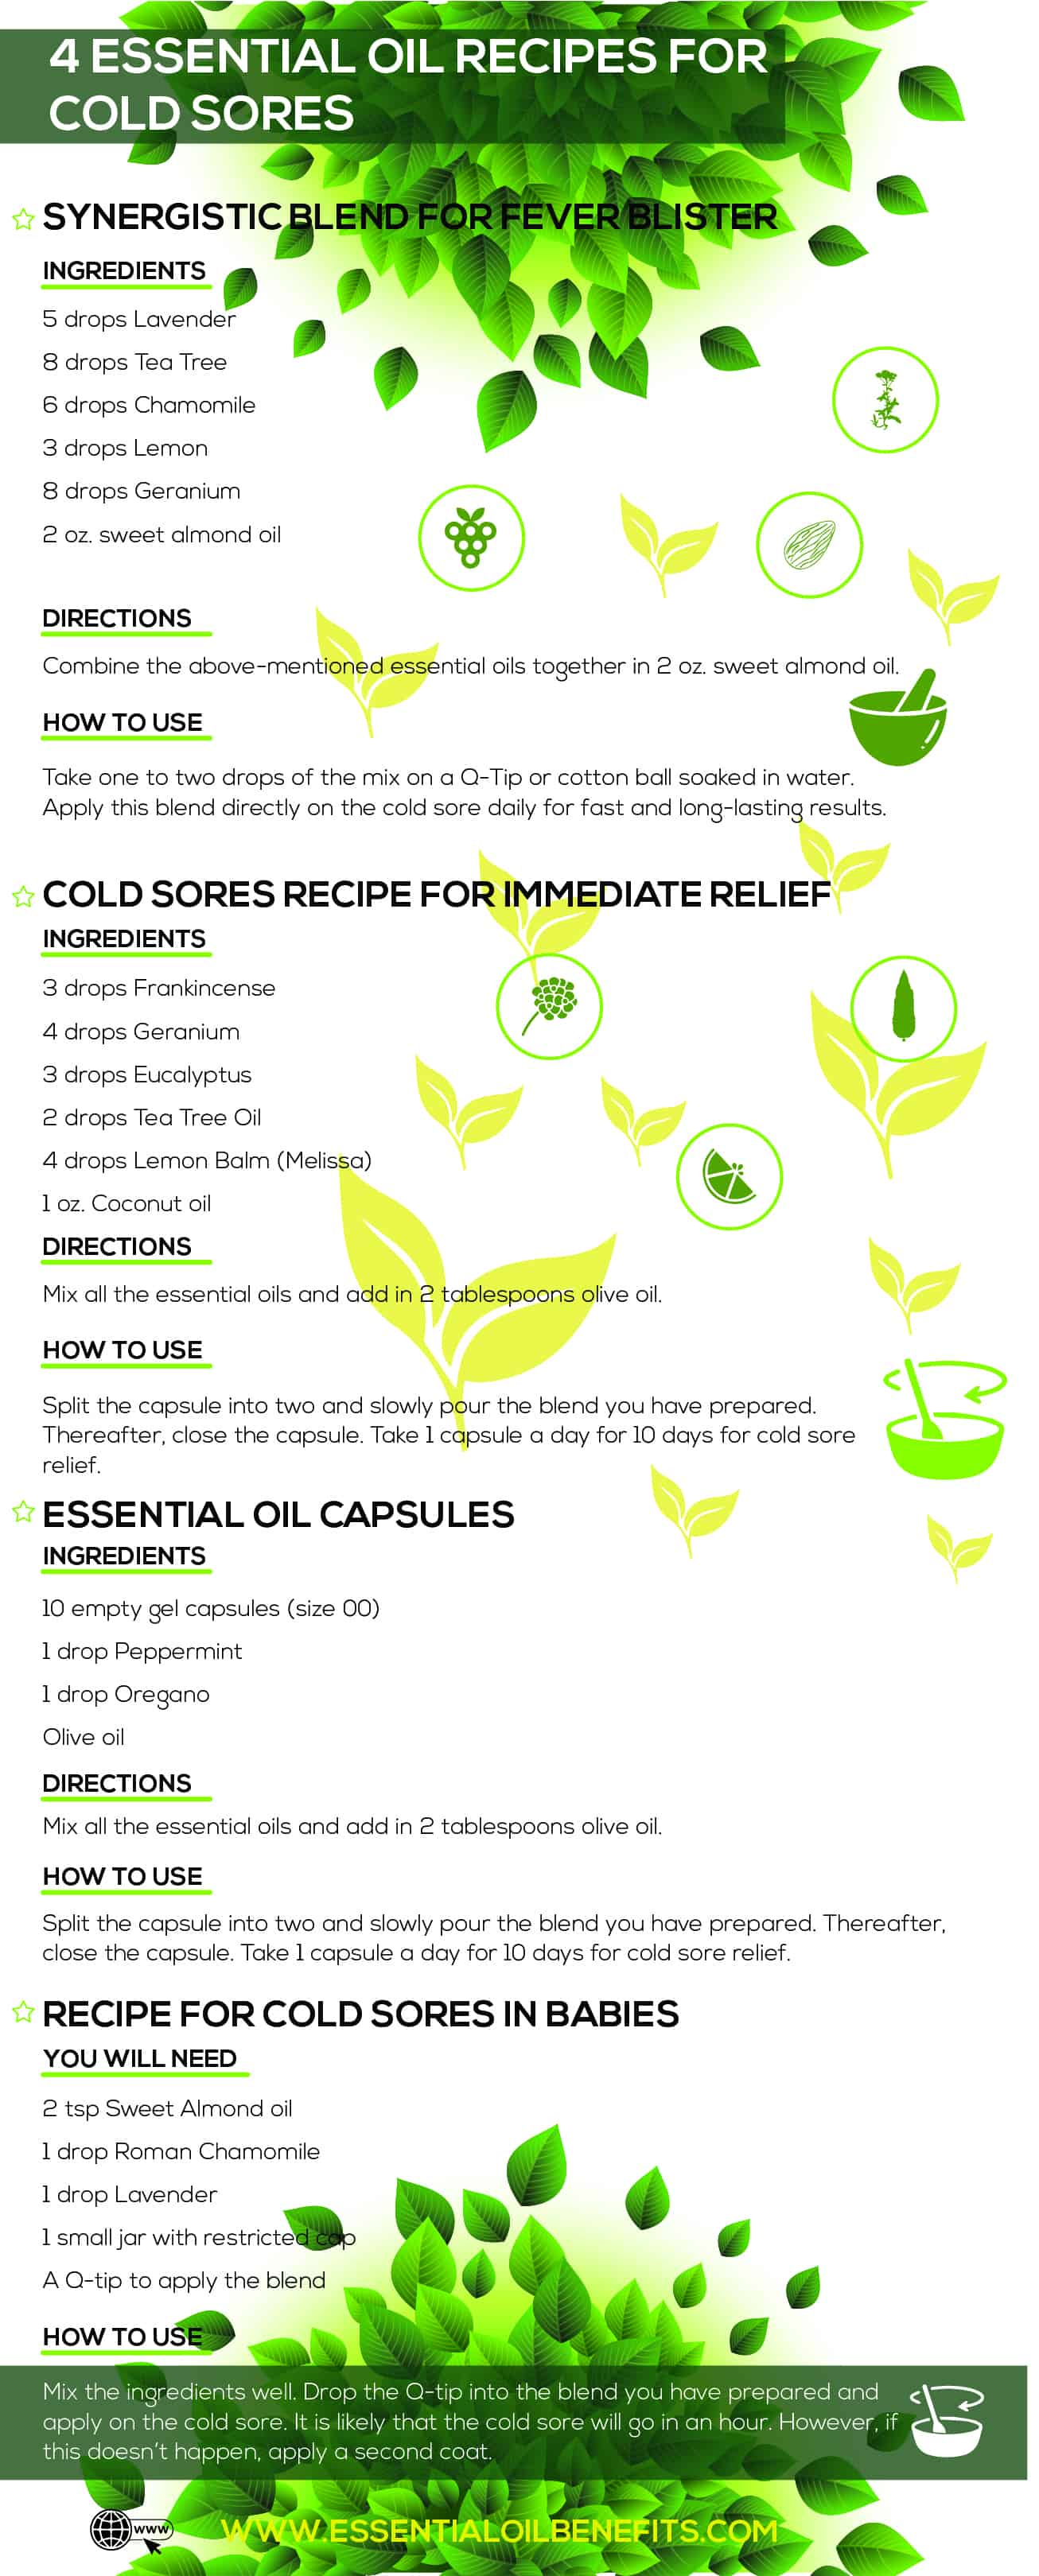 8 Essential Oil Recipes For Cold Sore Relief Essential Oil Benefits